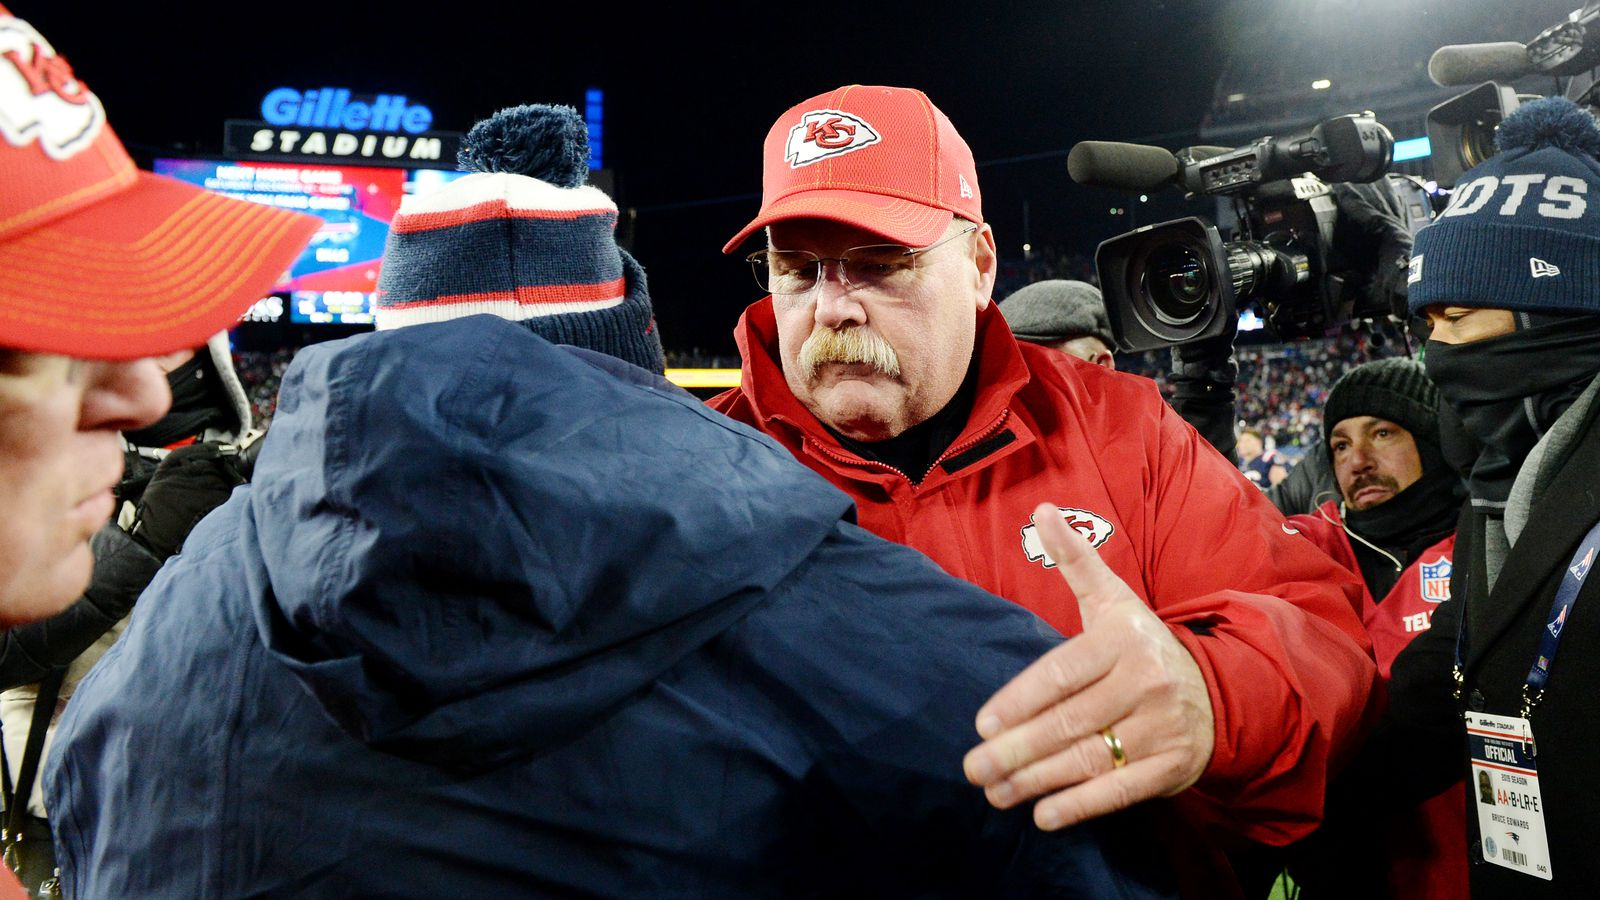 The Andy Reid post-game celebration is here...